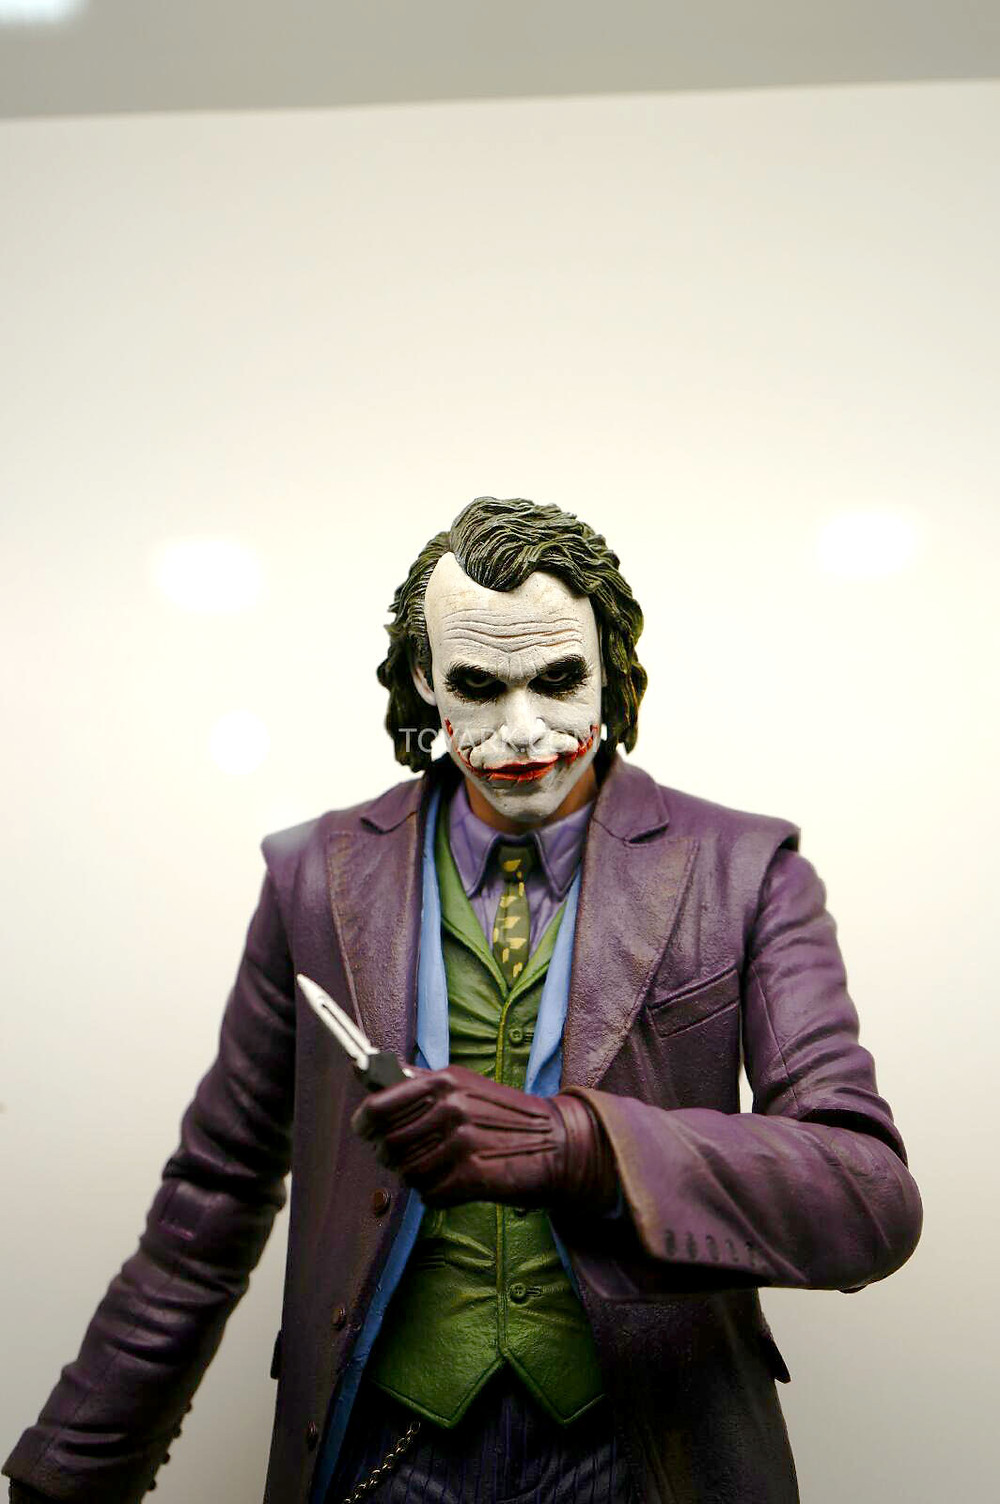 SDCC-2014-NECA-Quarter-Scale-Figures-005.jpg